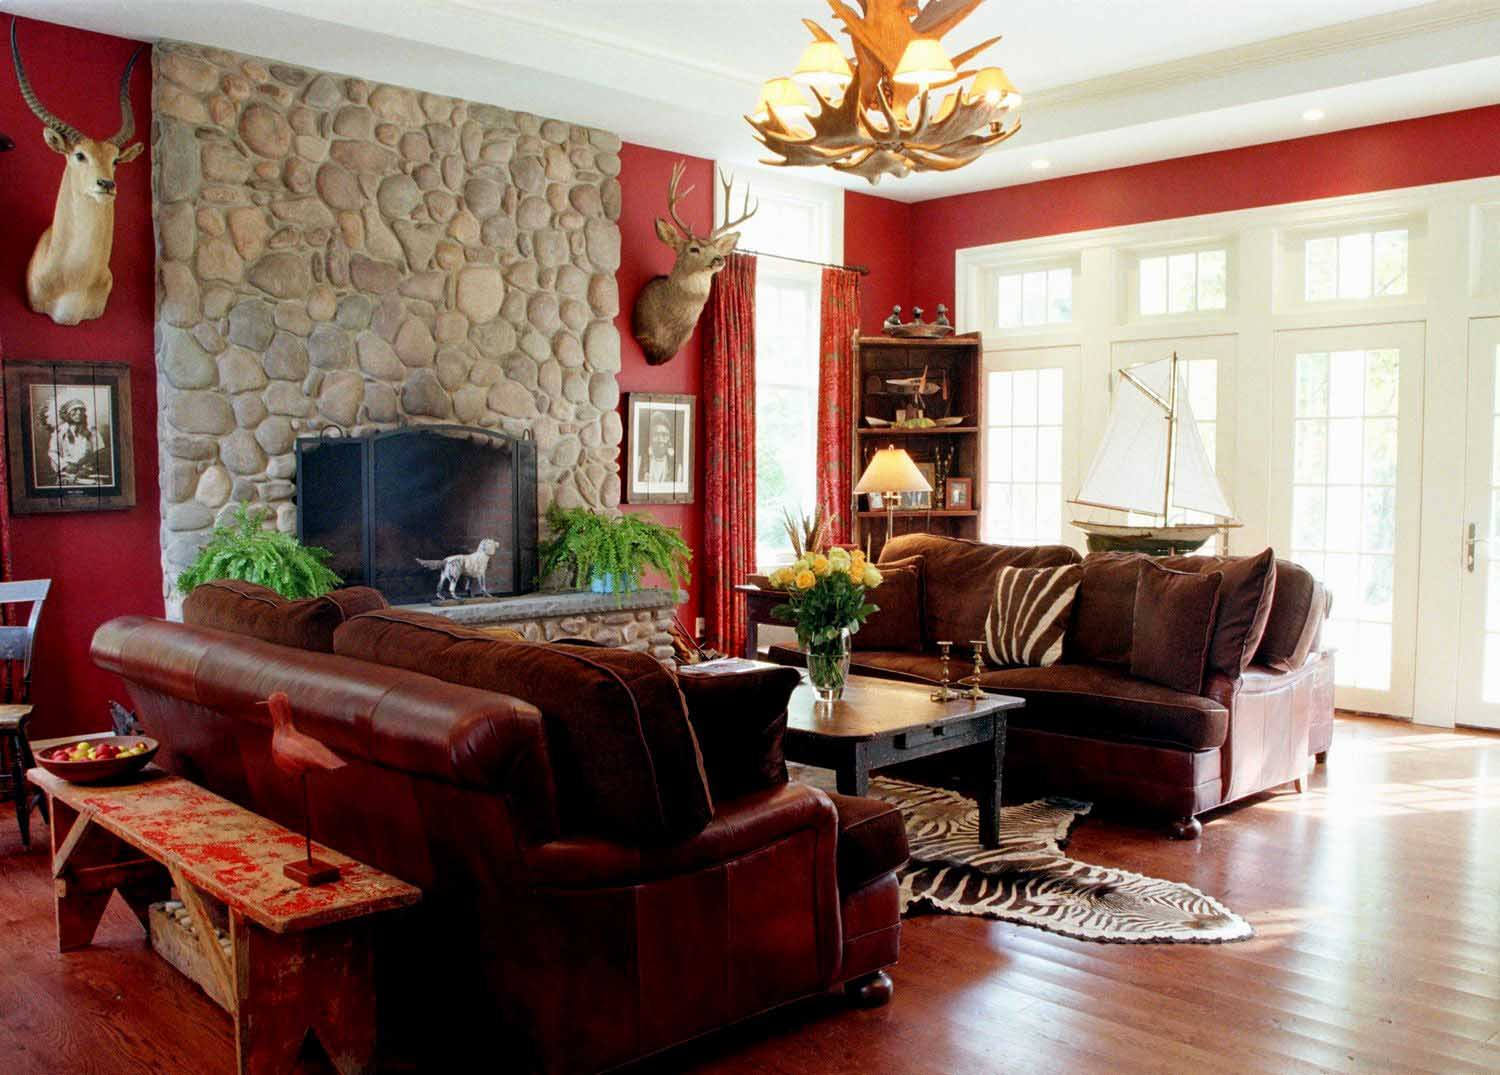 red rug living room ideas arabian style furniture 14+ amazing designs indian style, interior and ...